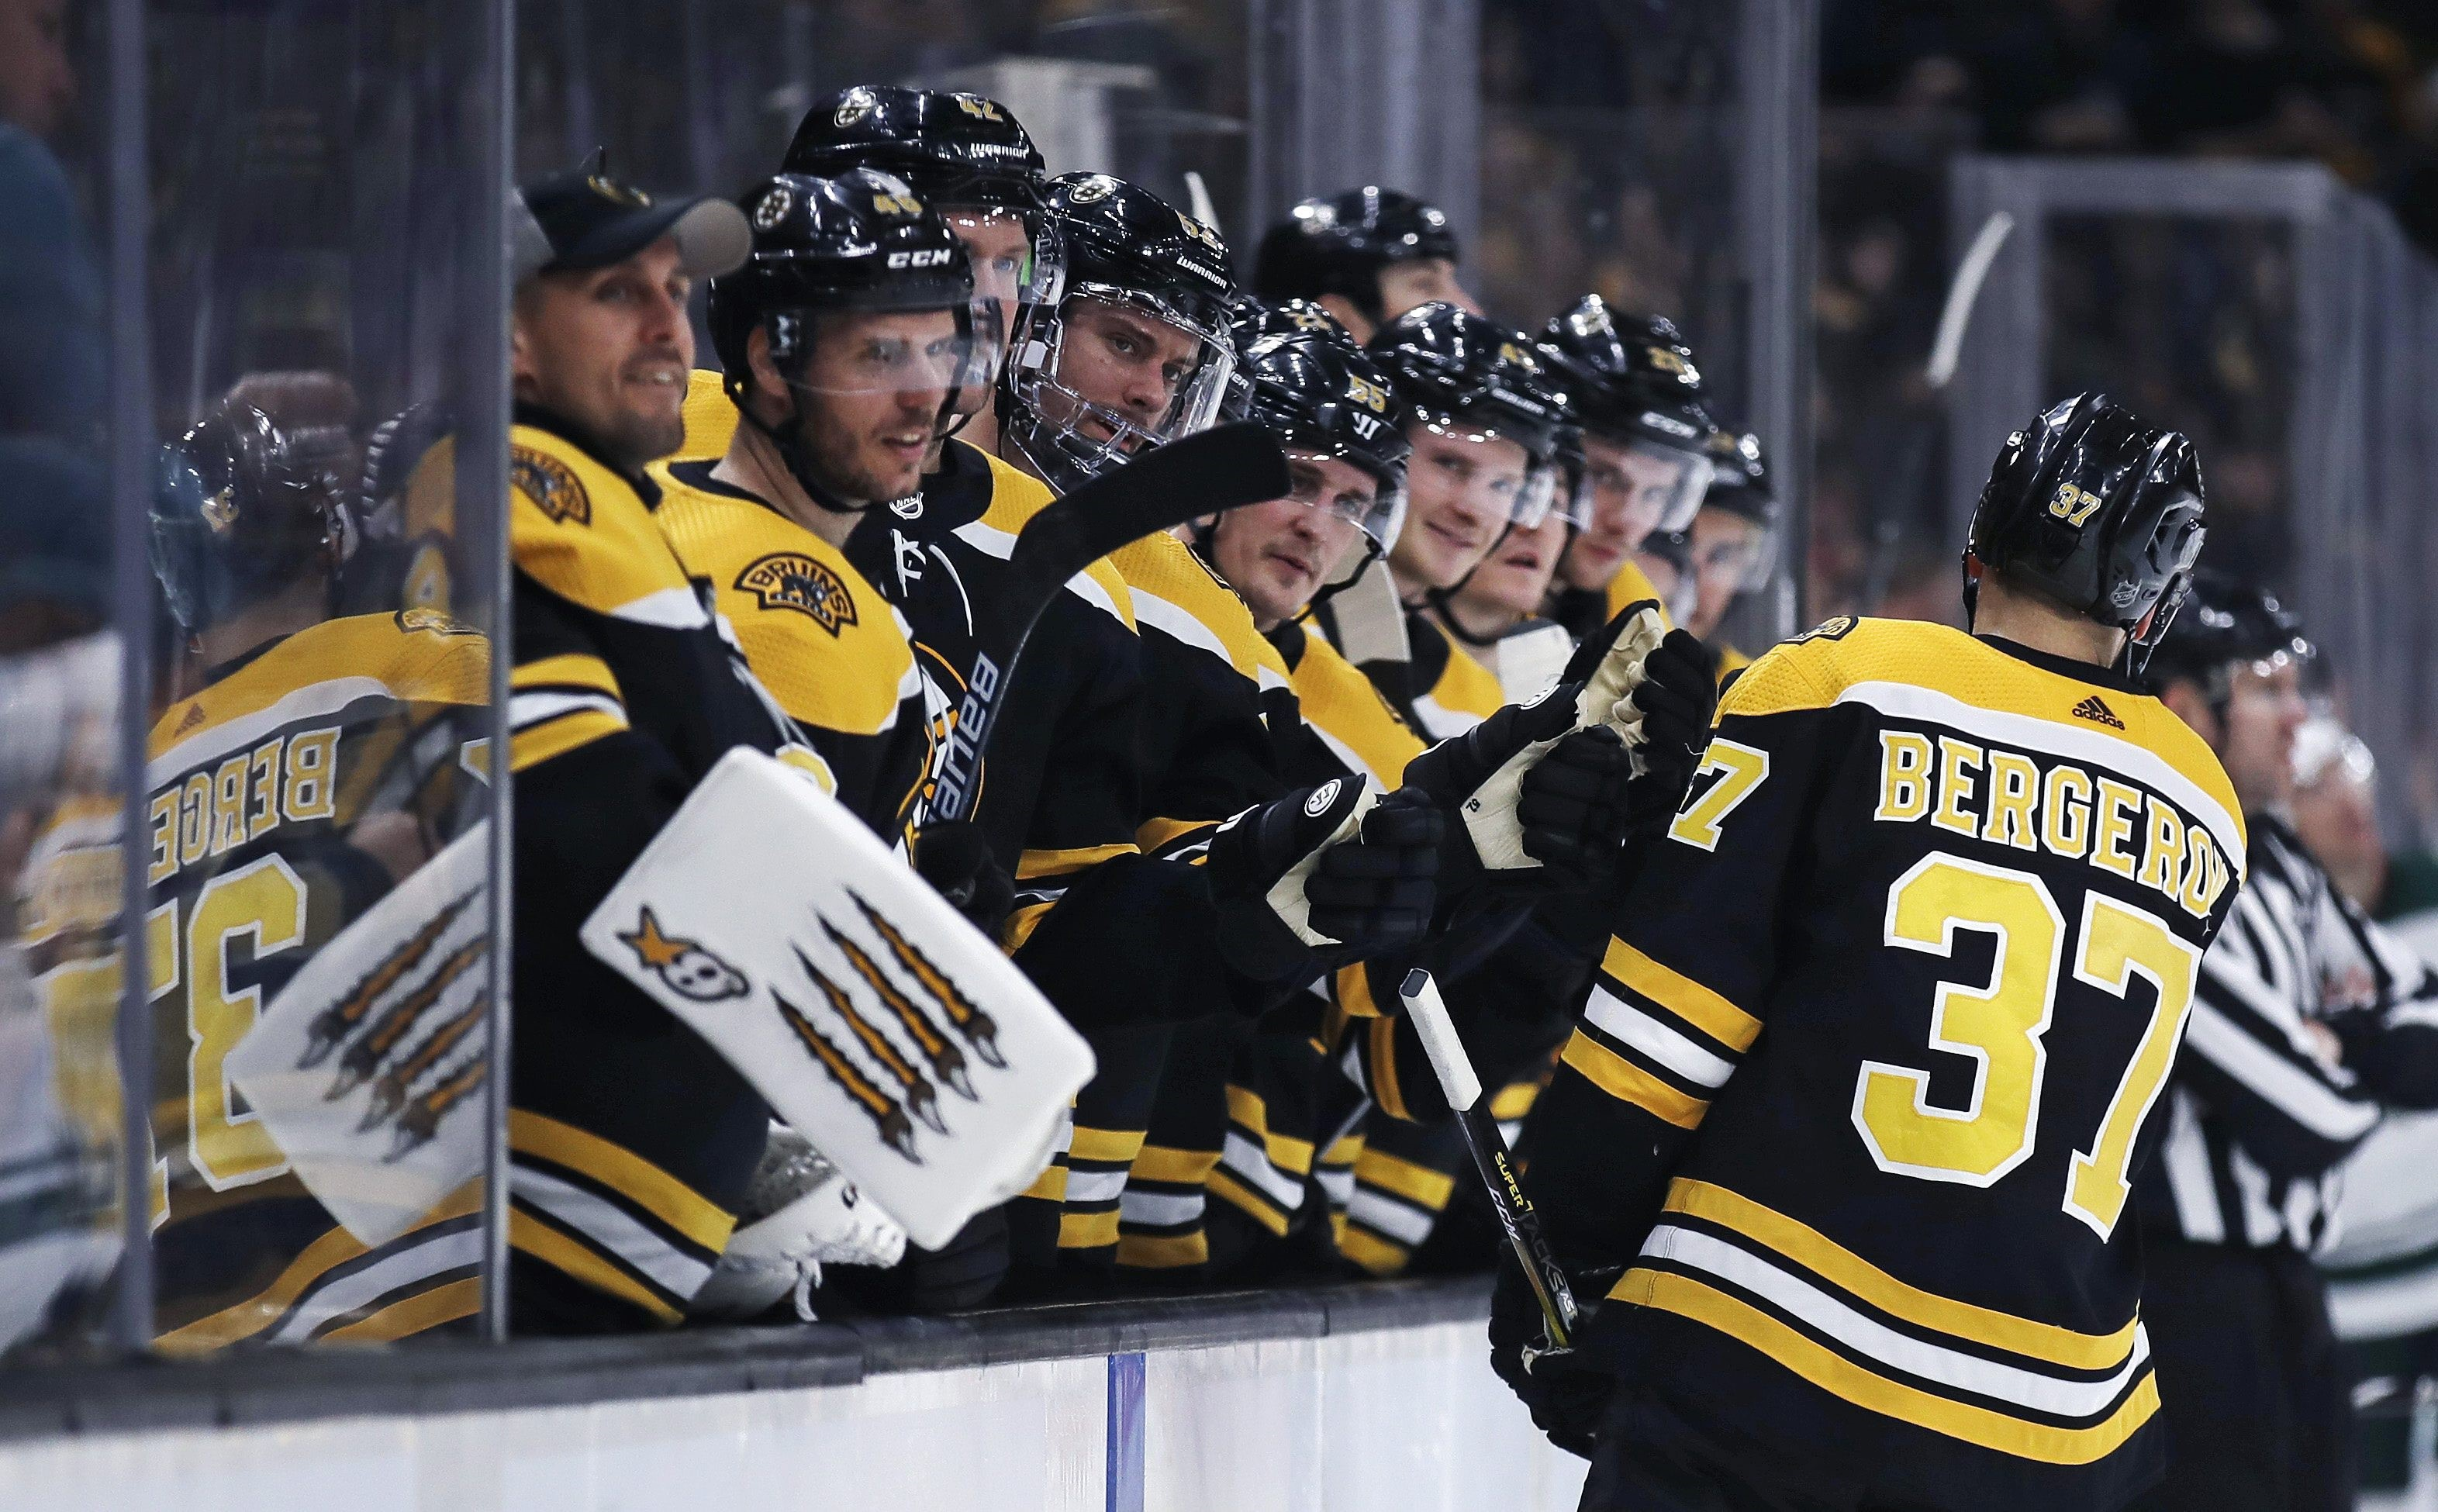 Bruins Win Their Fifth Straight in Convincing Fashion